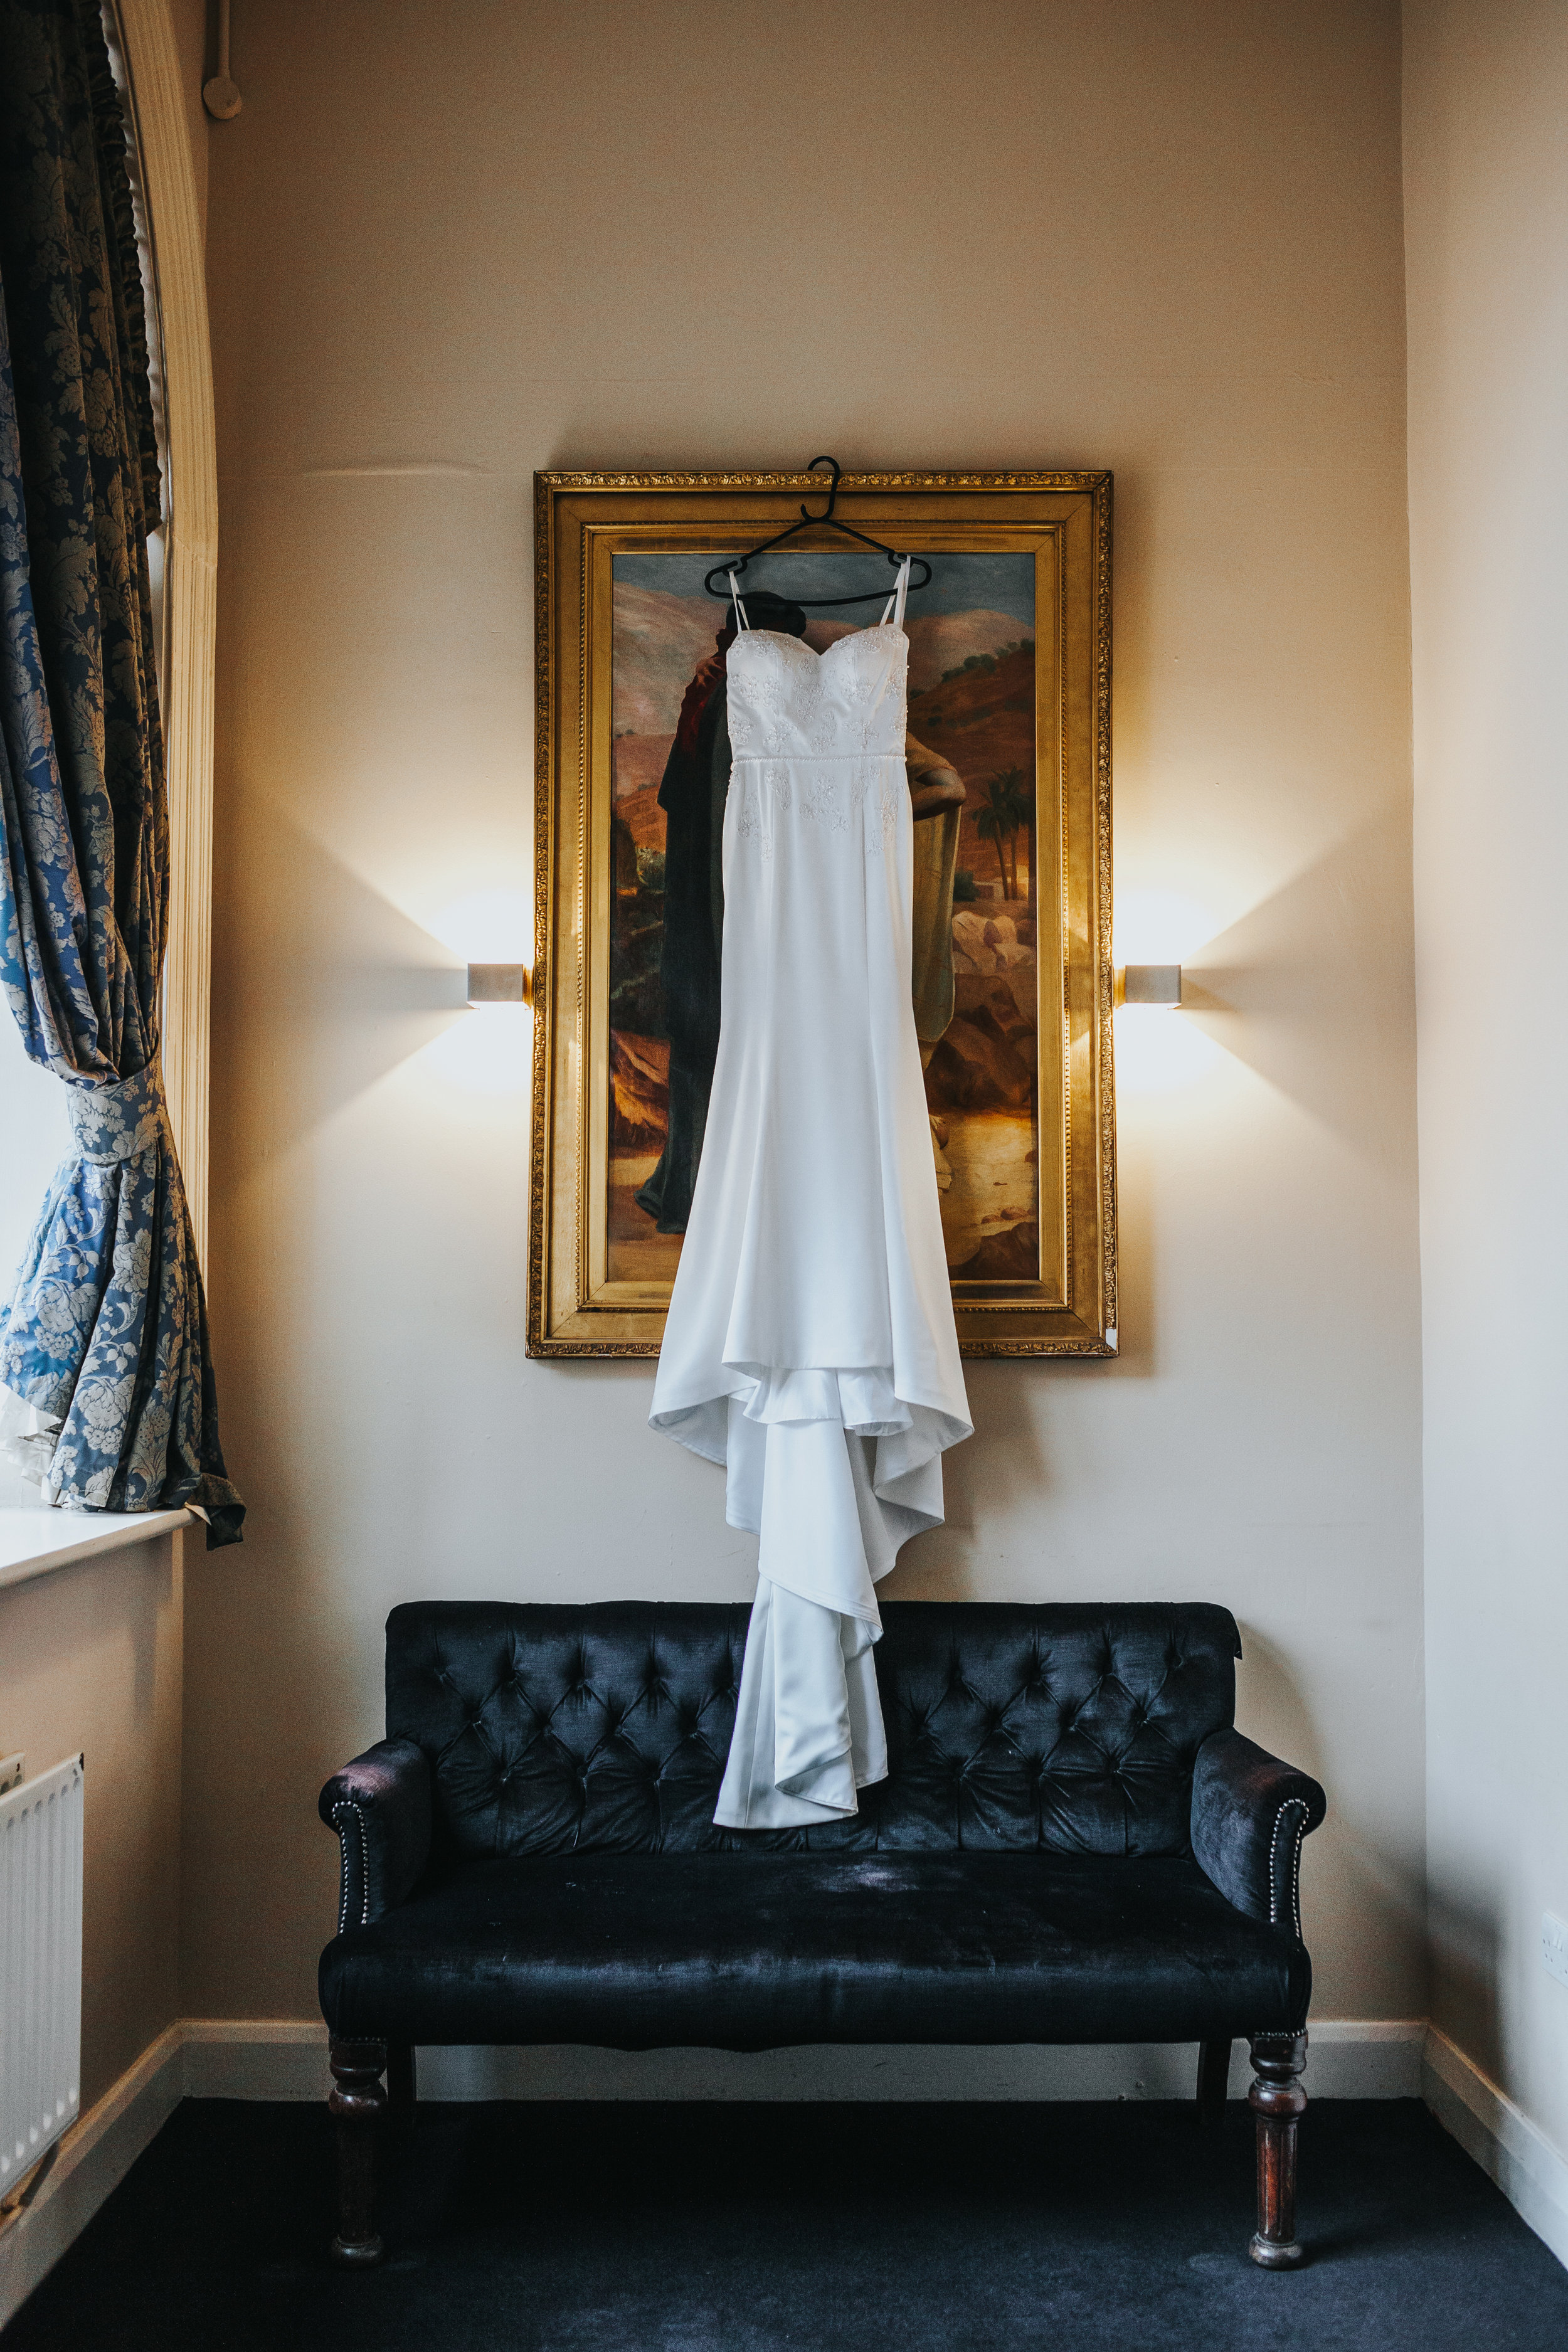 Dress hanging on painting